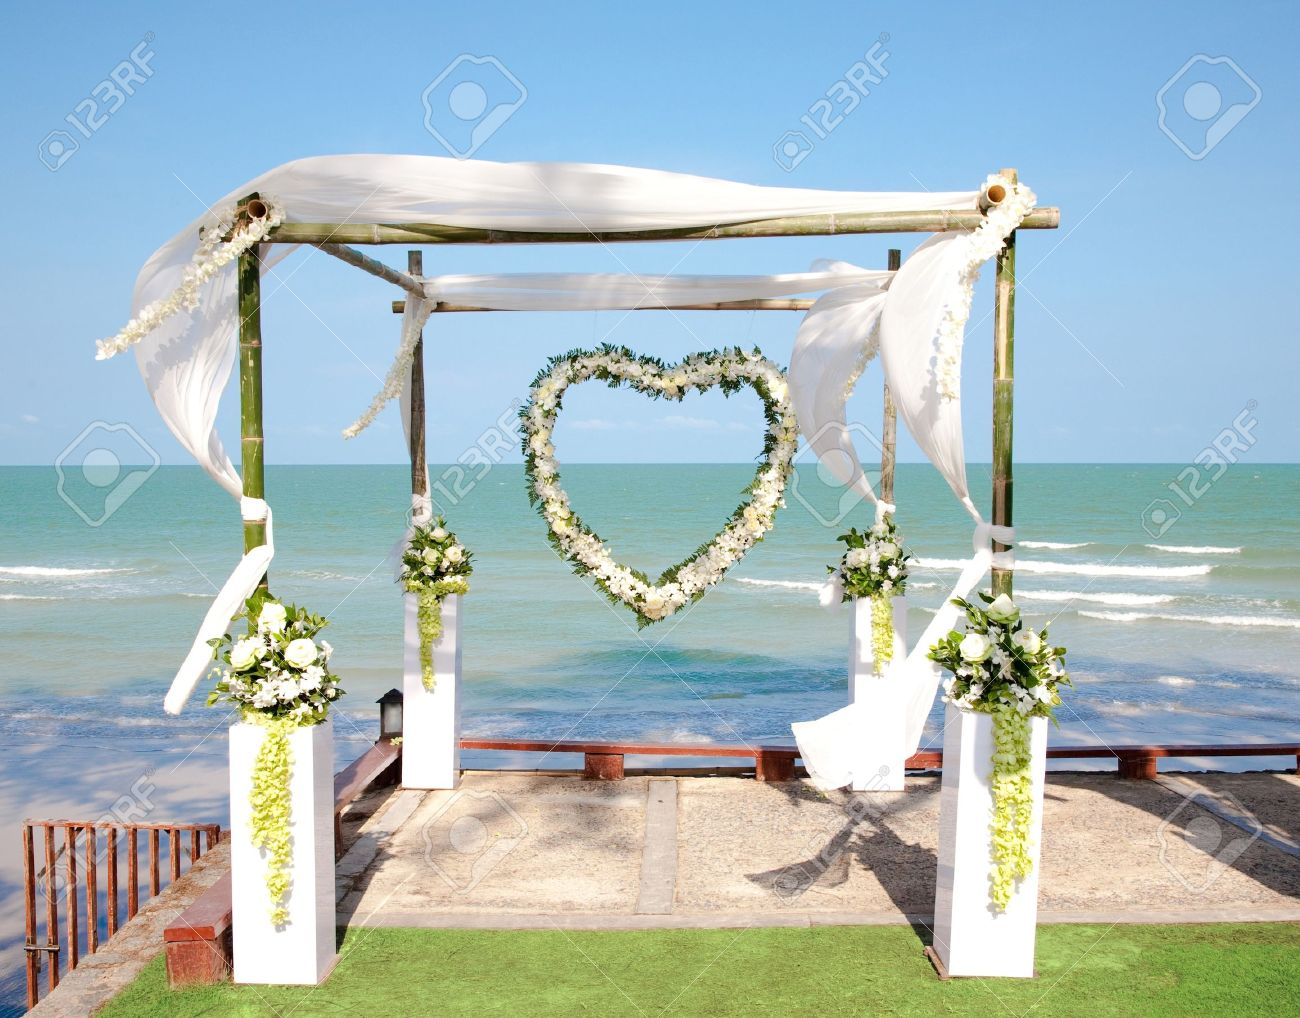 Wedding arch with flowers decoration on the beach Stock Photo - 9181644